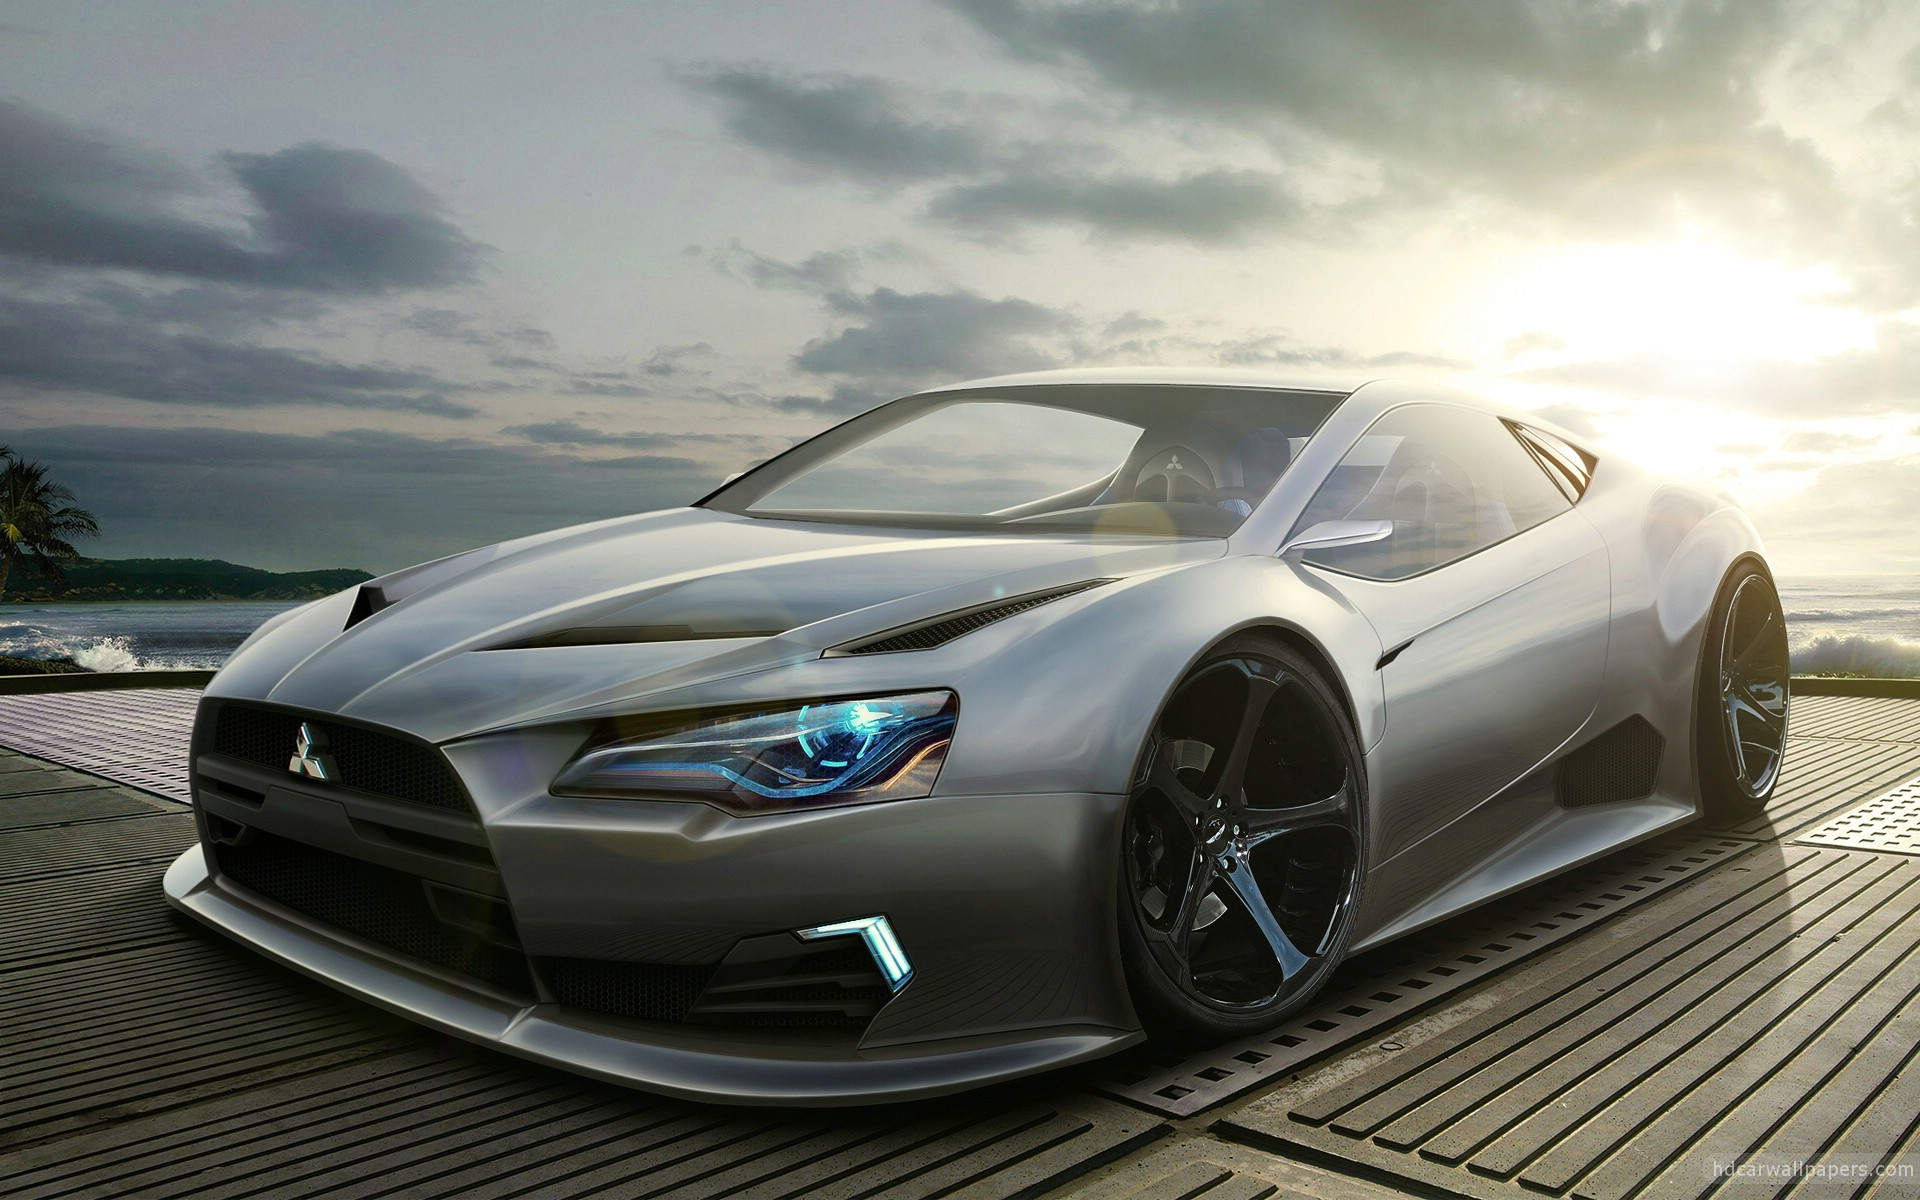 2560x1600 Cool Car Wallpaper High Quality Resolution #wgt